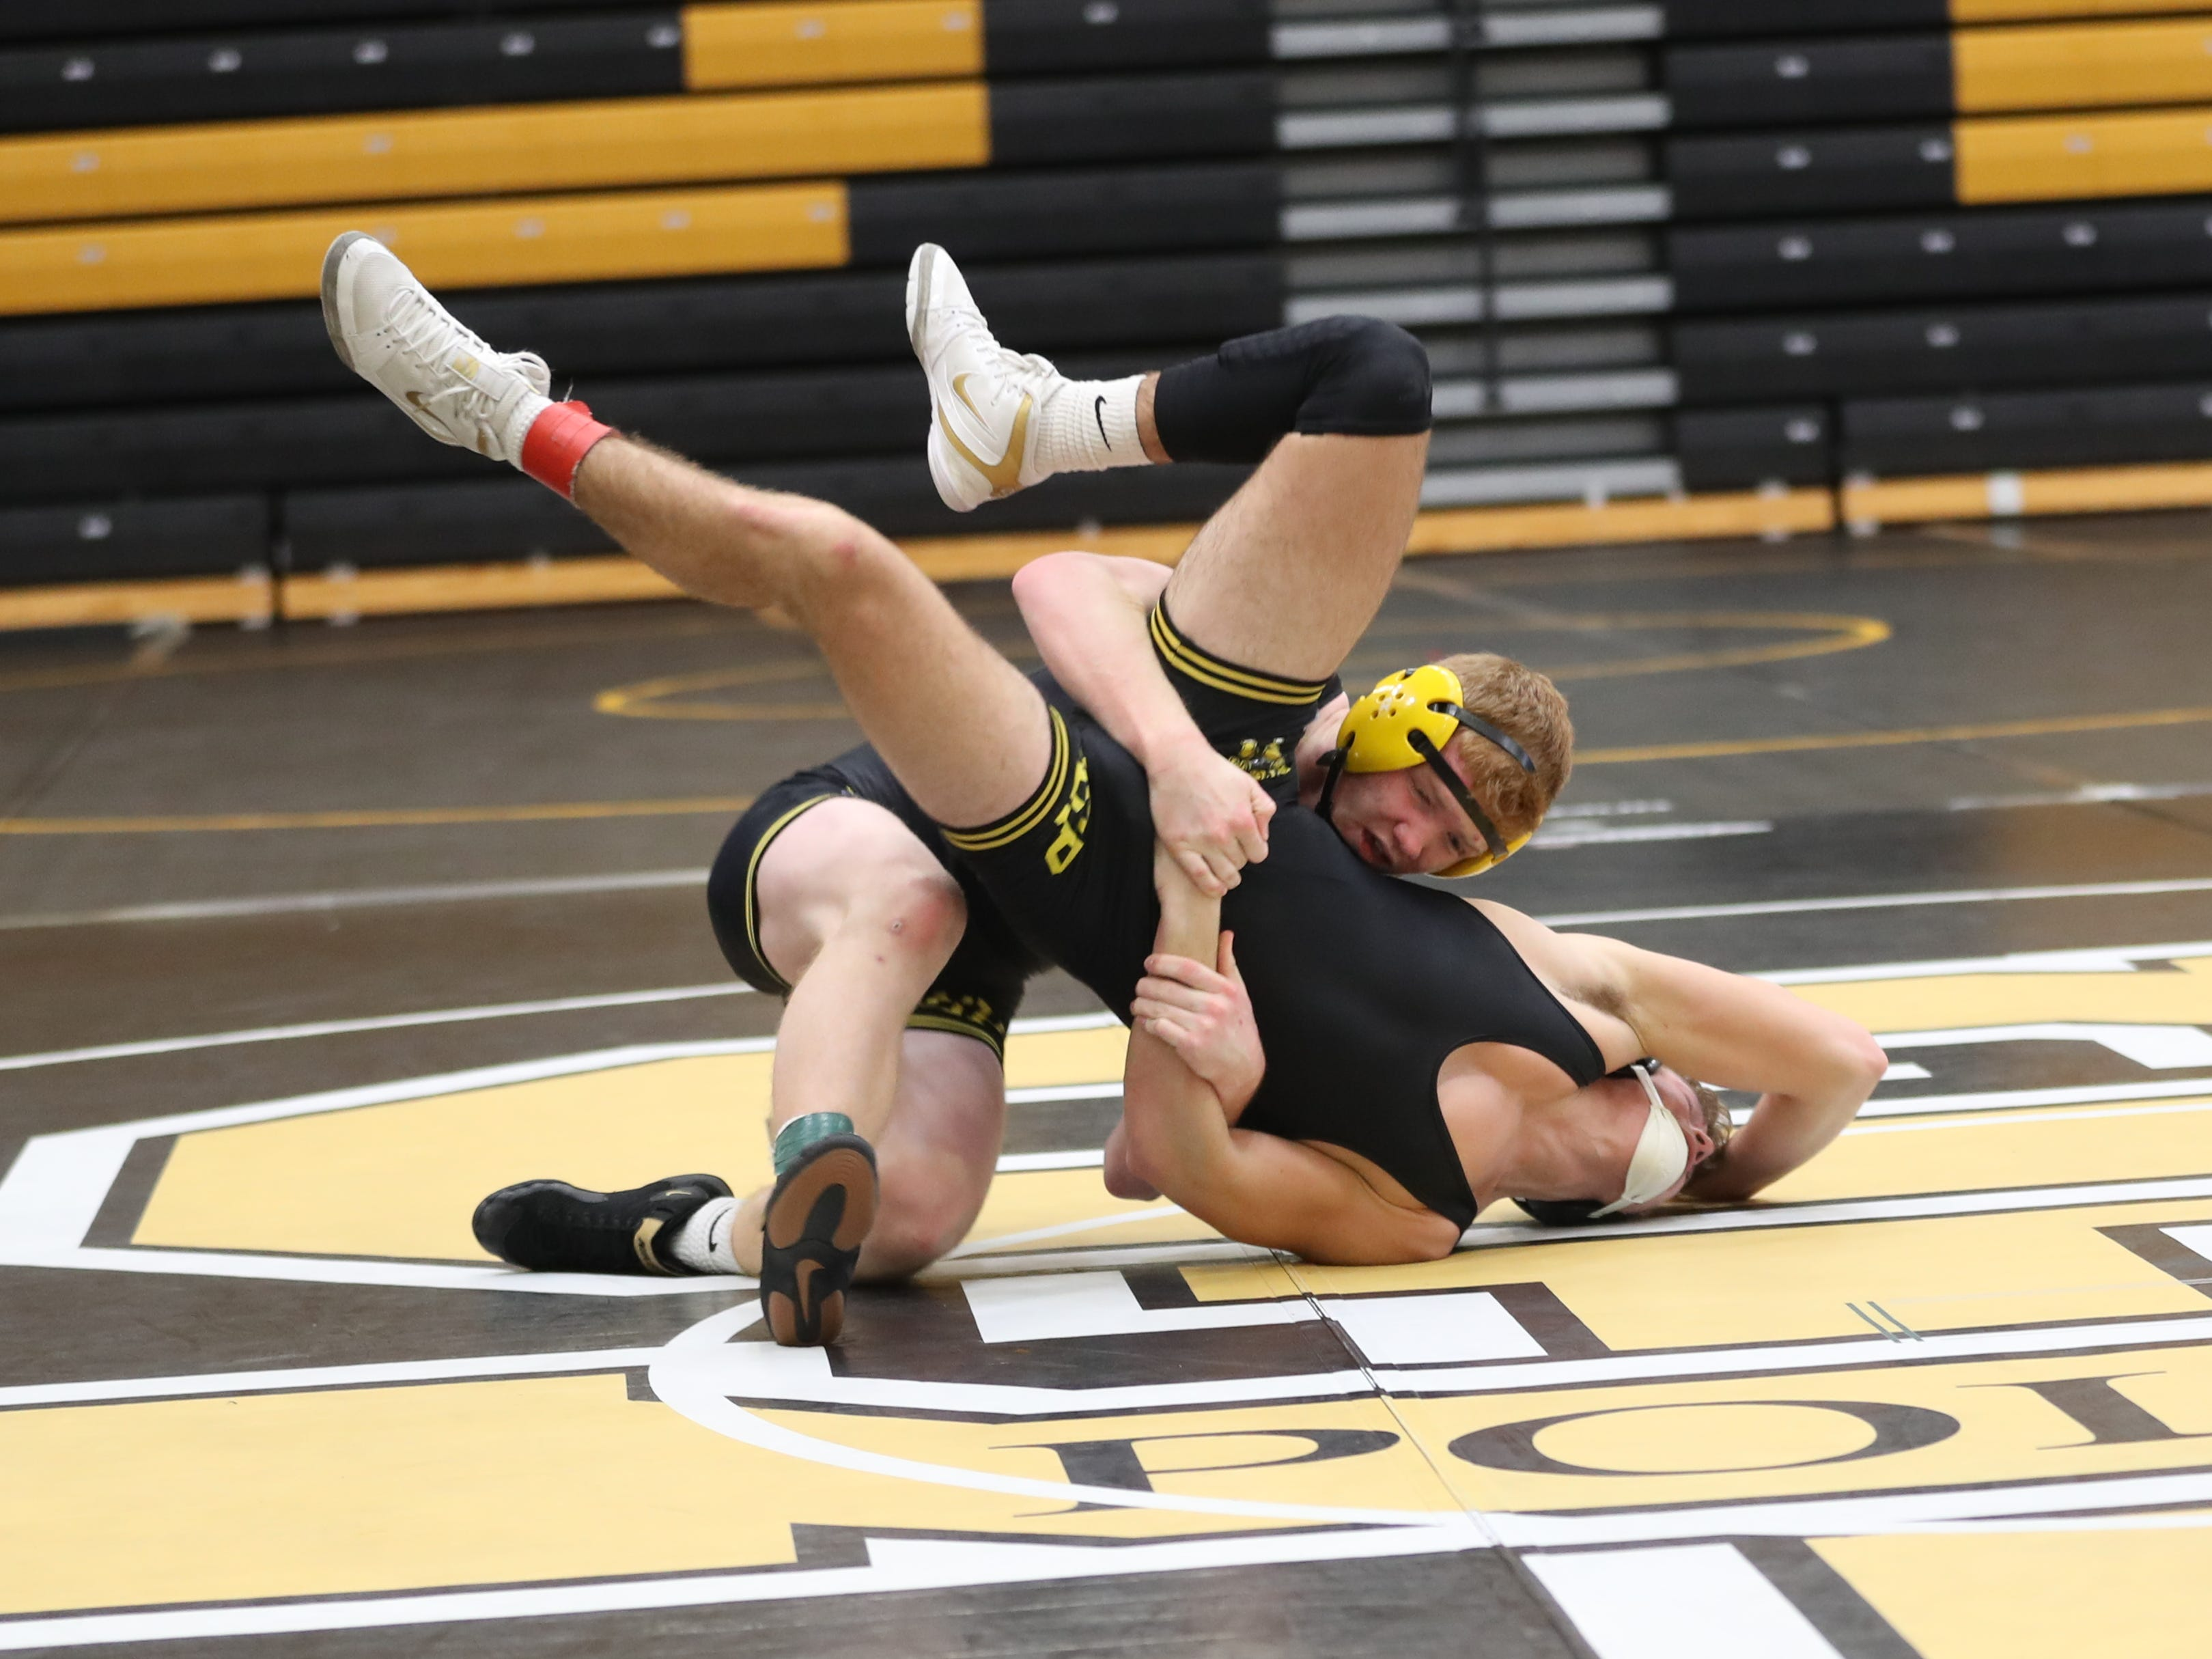 Ryan Strickland wrestles at the Red Owens Holiday Classic at Southeast Polk High School on Dec. 15, 2018.